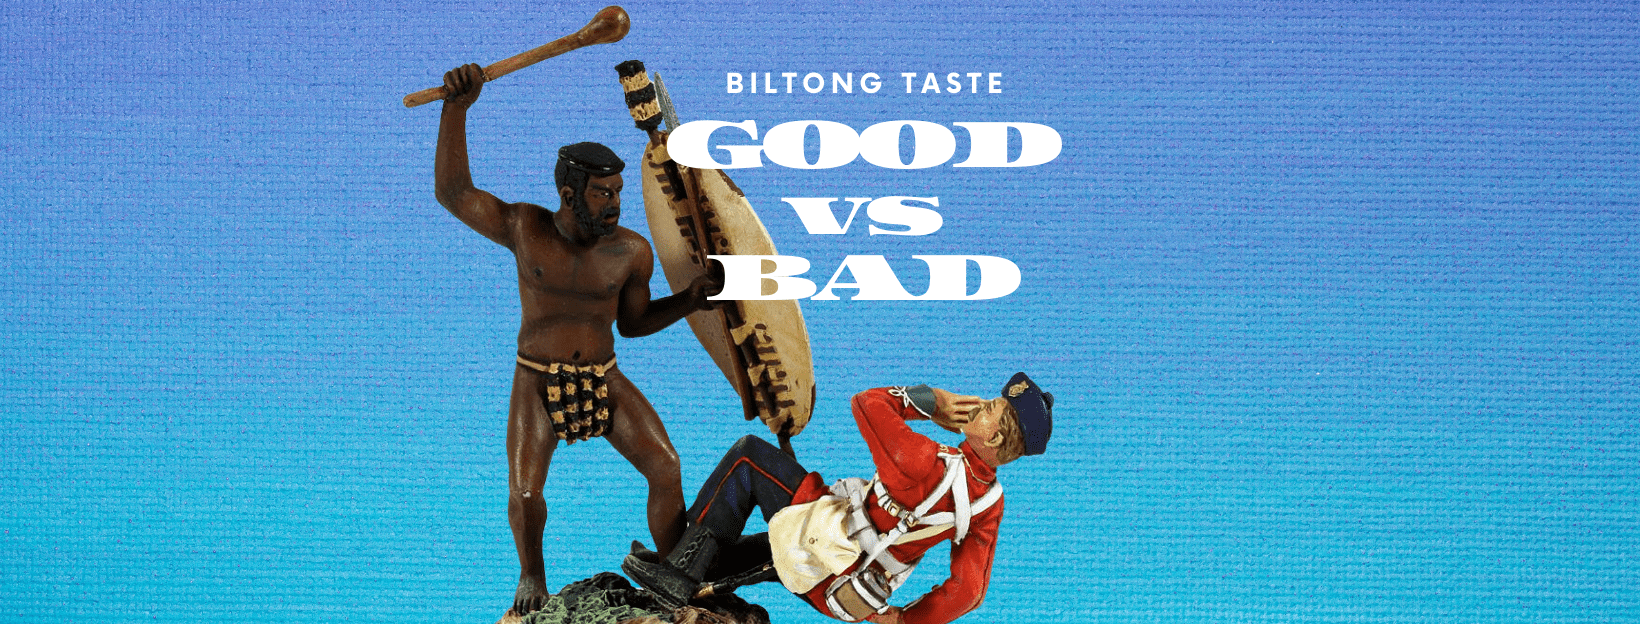 GOOD Vs BAD Biltong taste and flavours unveiled